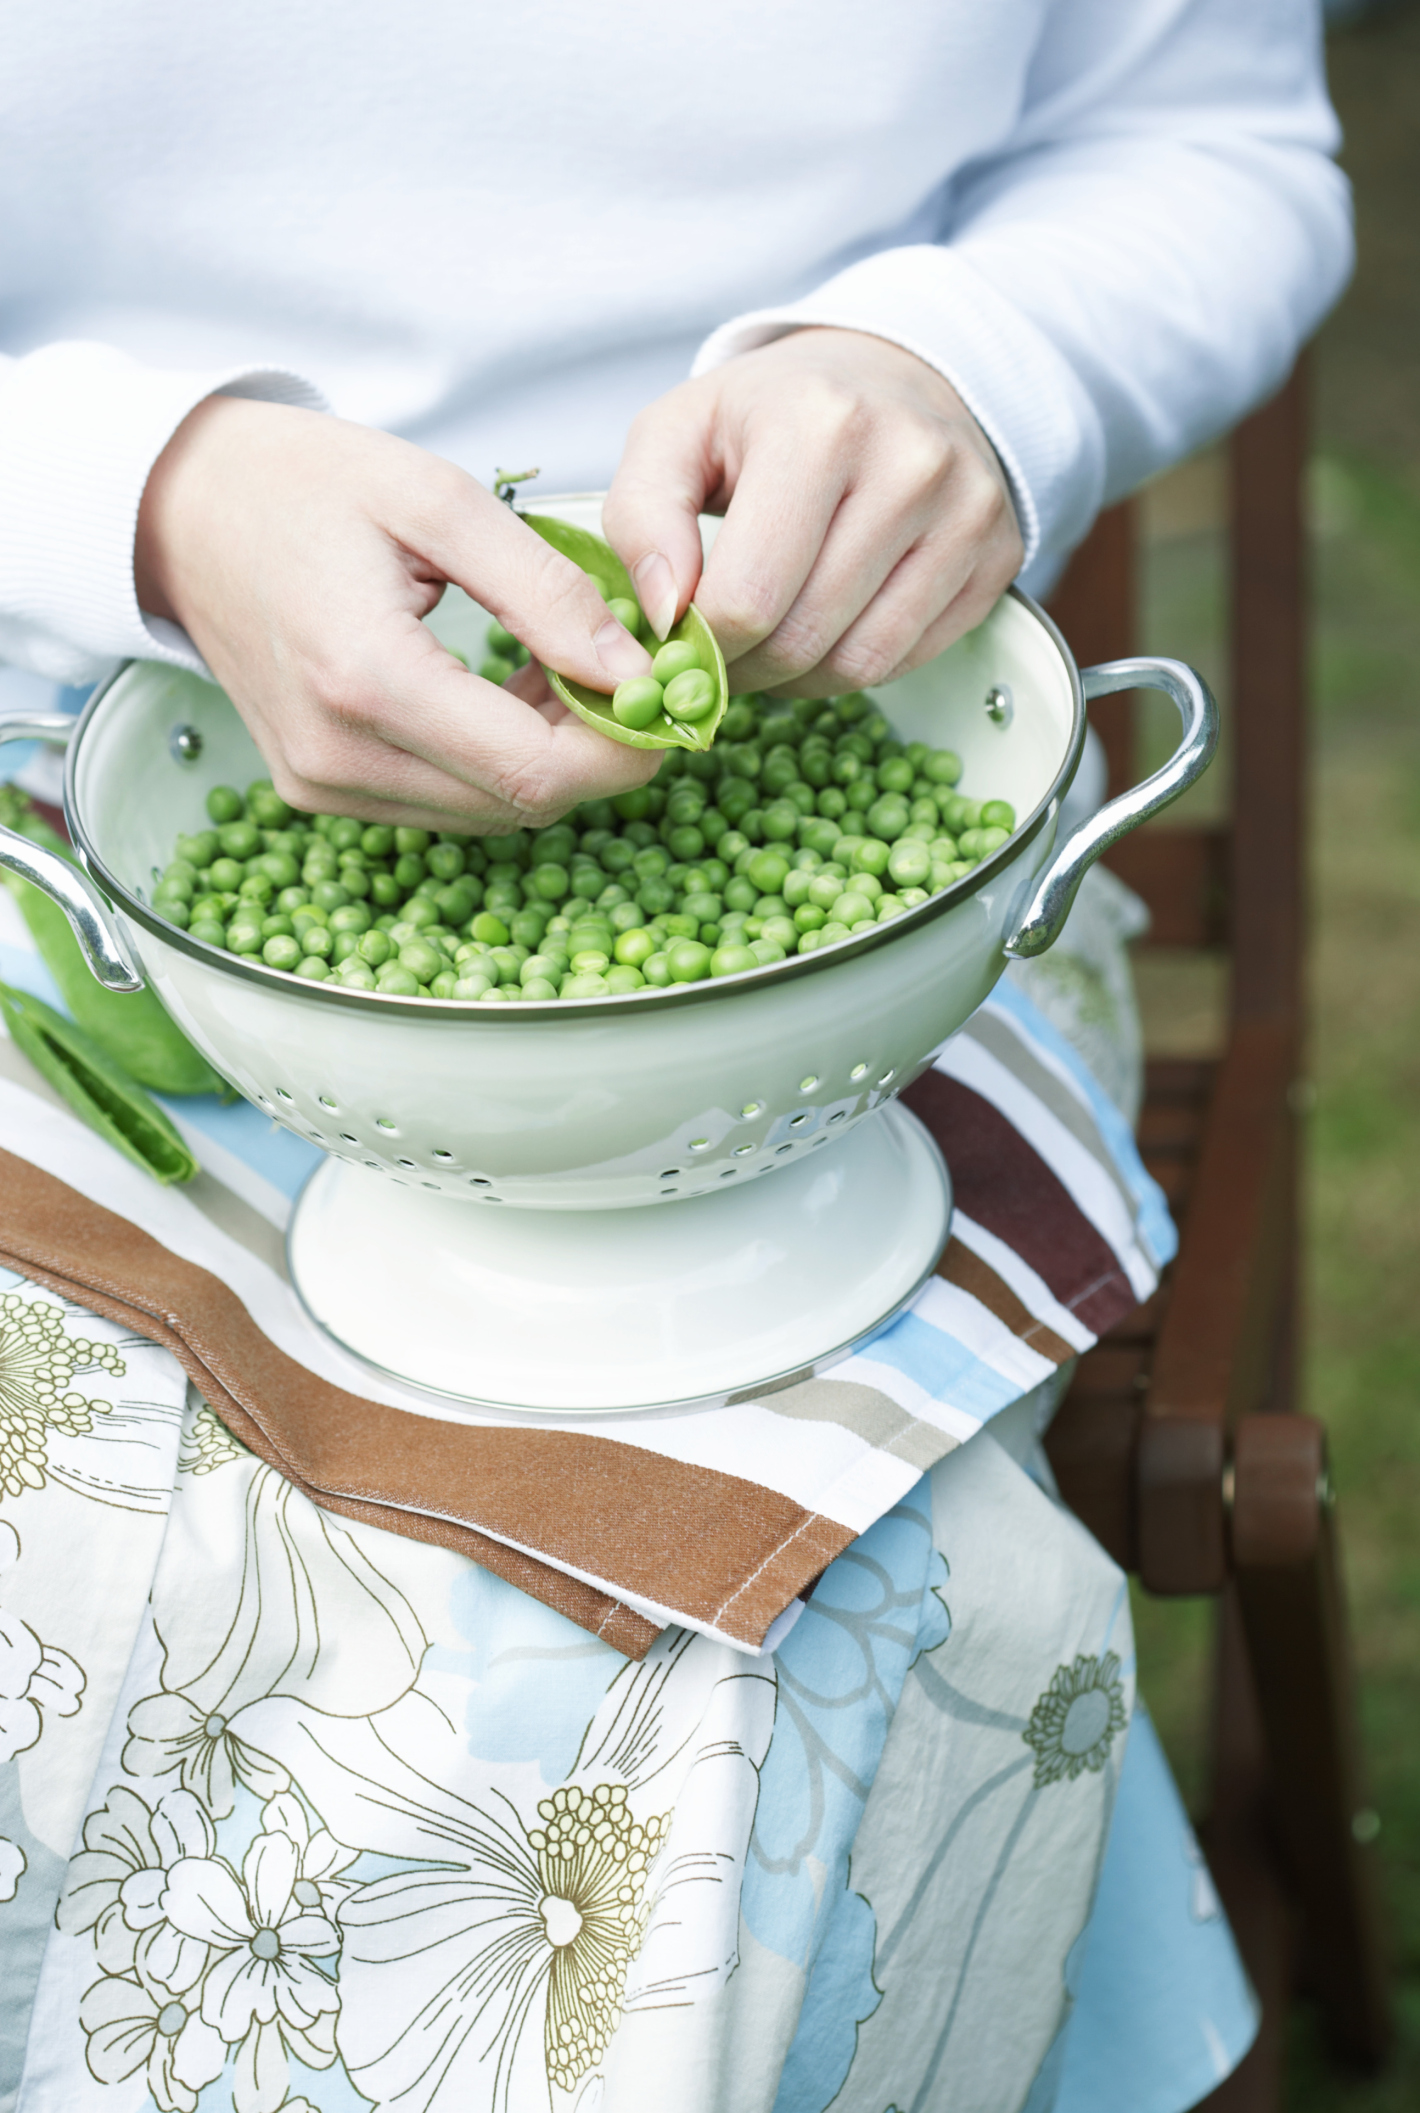 Peas have a low glycemic index.